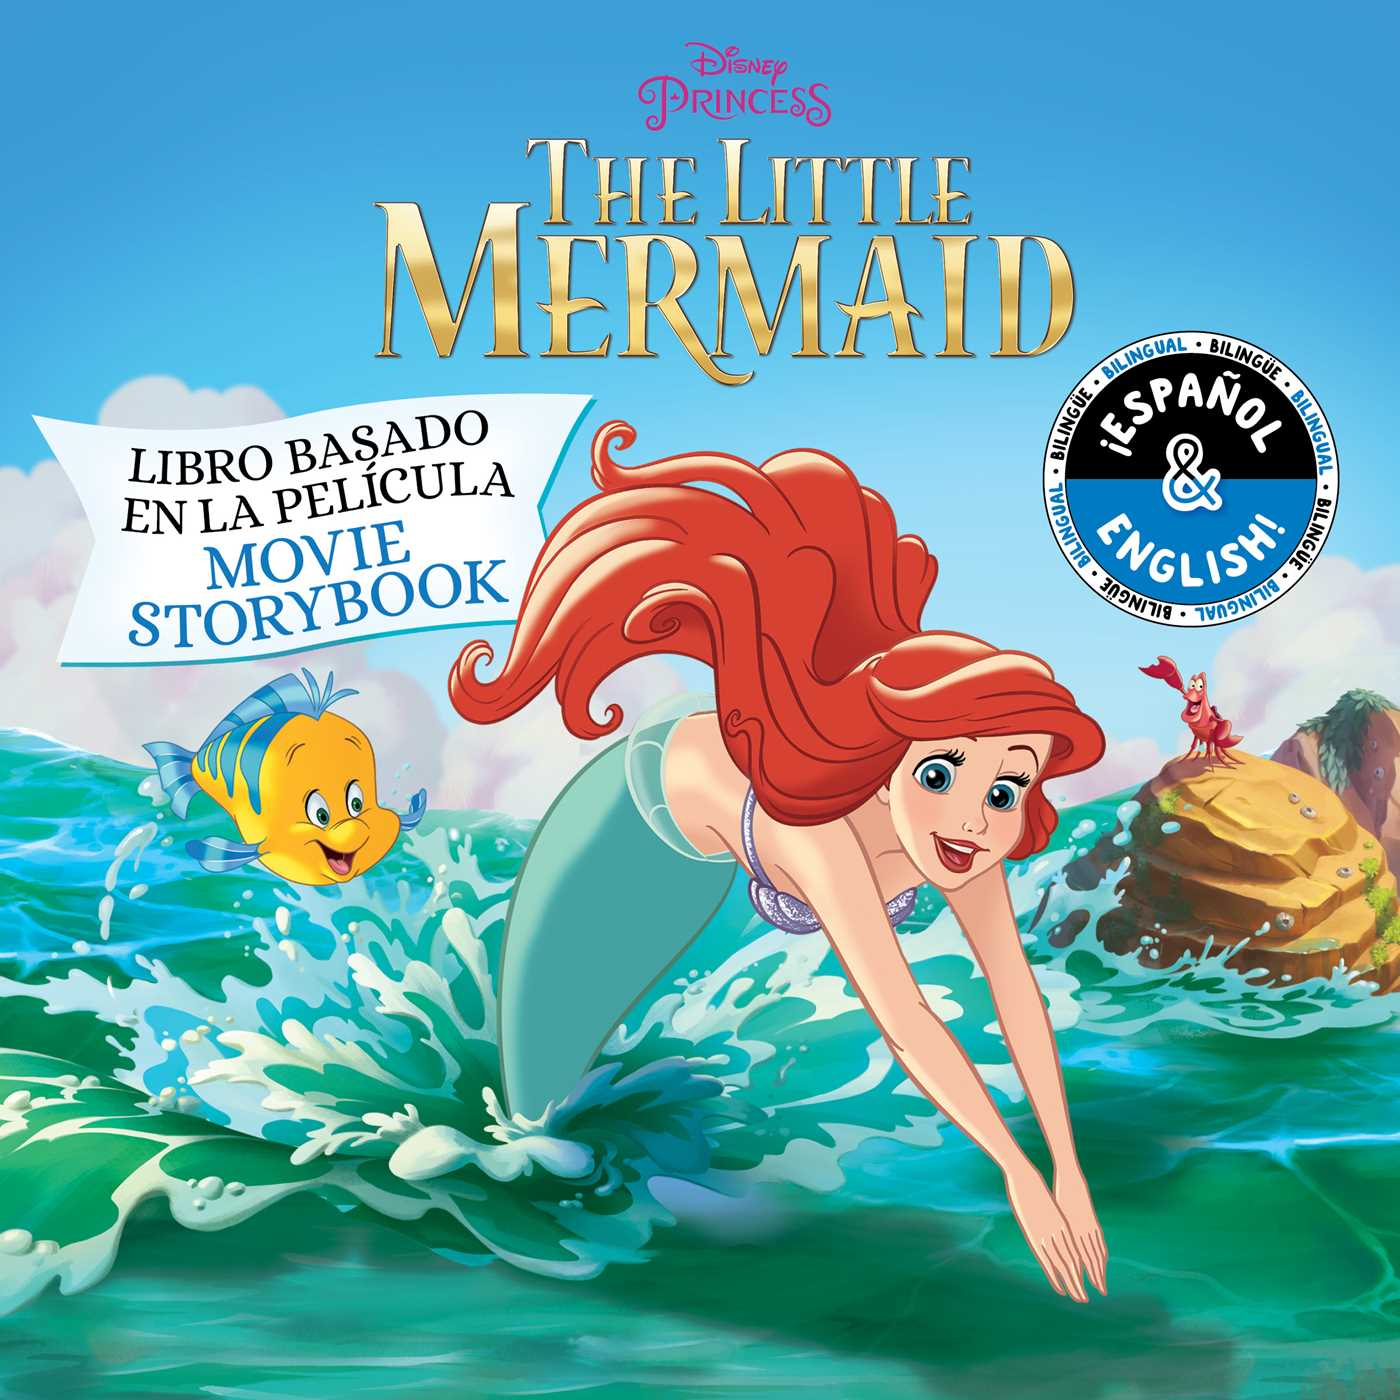 The little mermaid movie storybook libro basado en la pelicula english spanish disney 9781499807967 hr